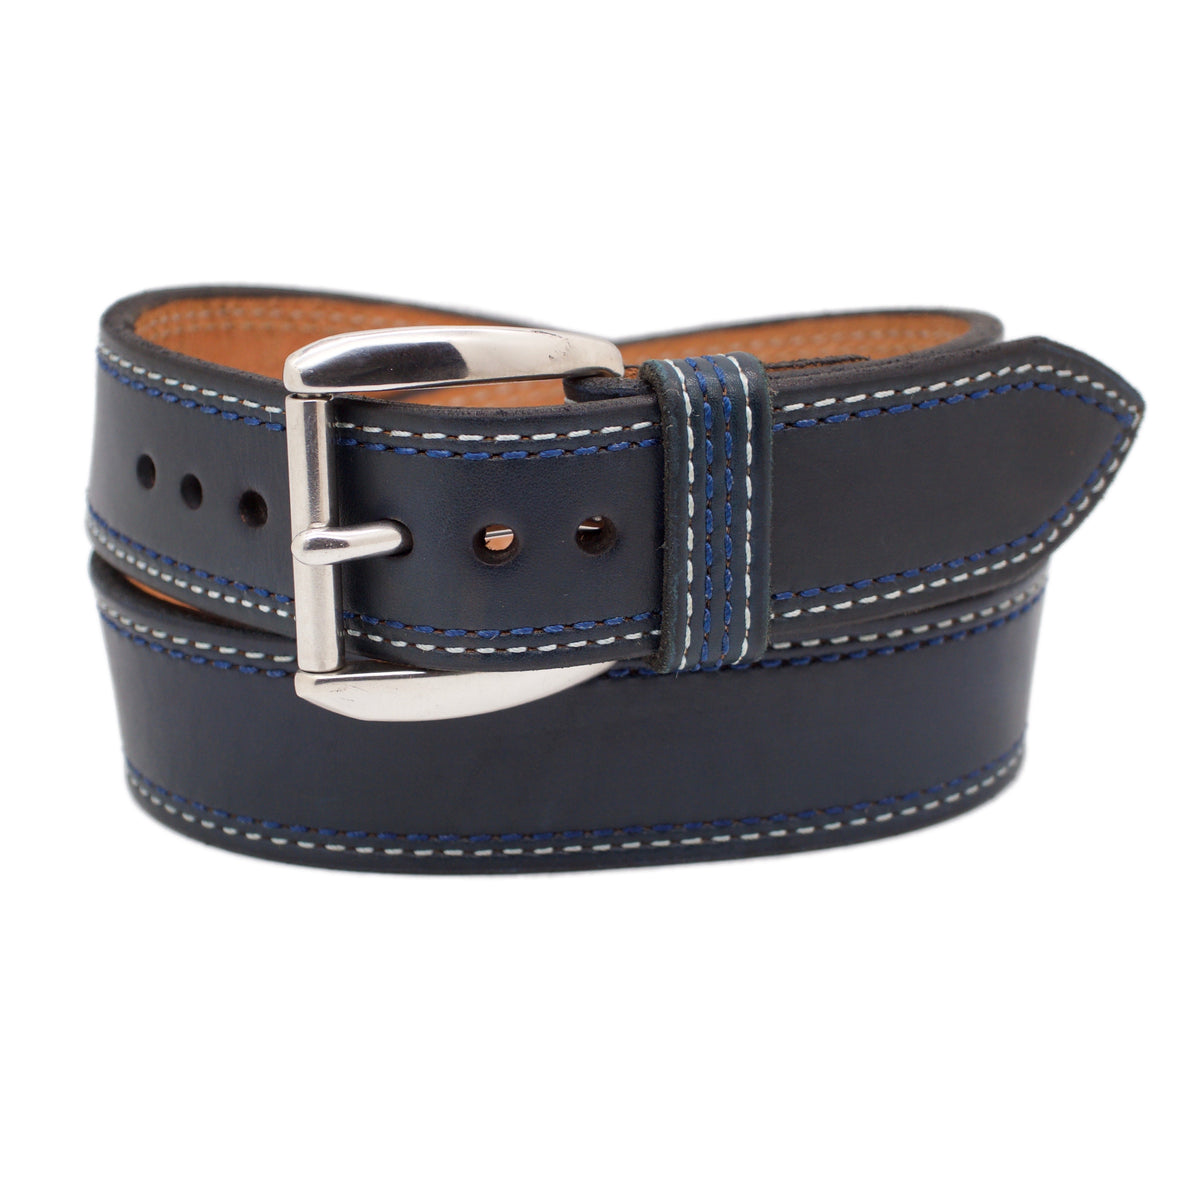 The BLUEBERRY HILL WIDE 1.75 Leather Belt